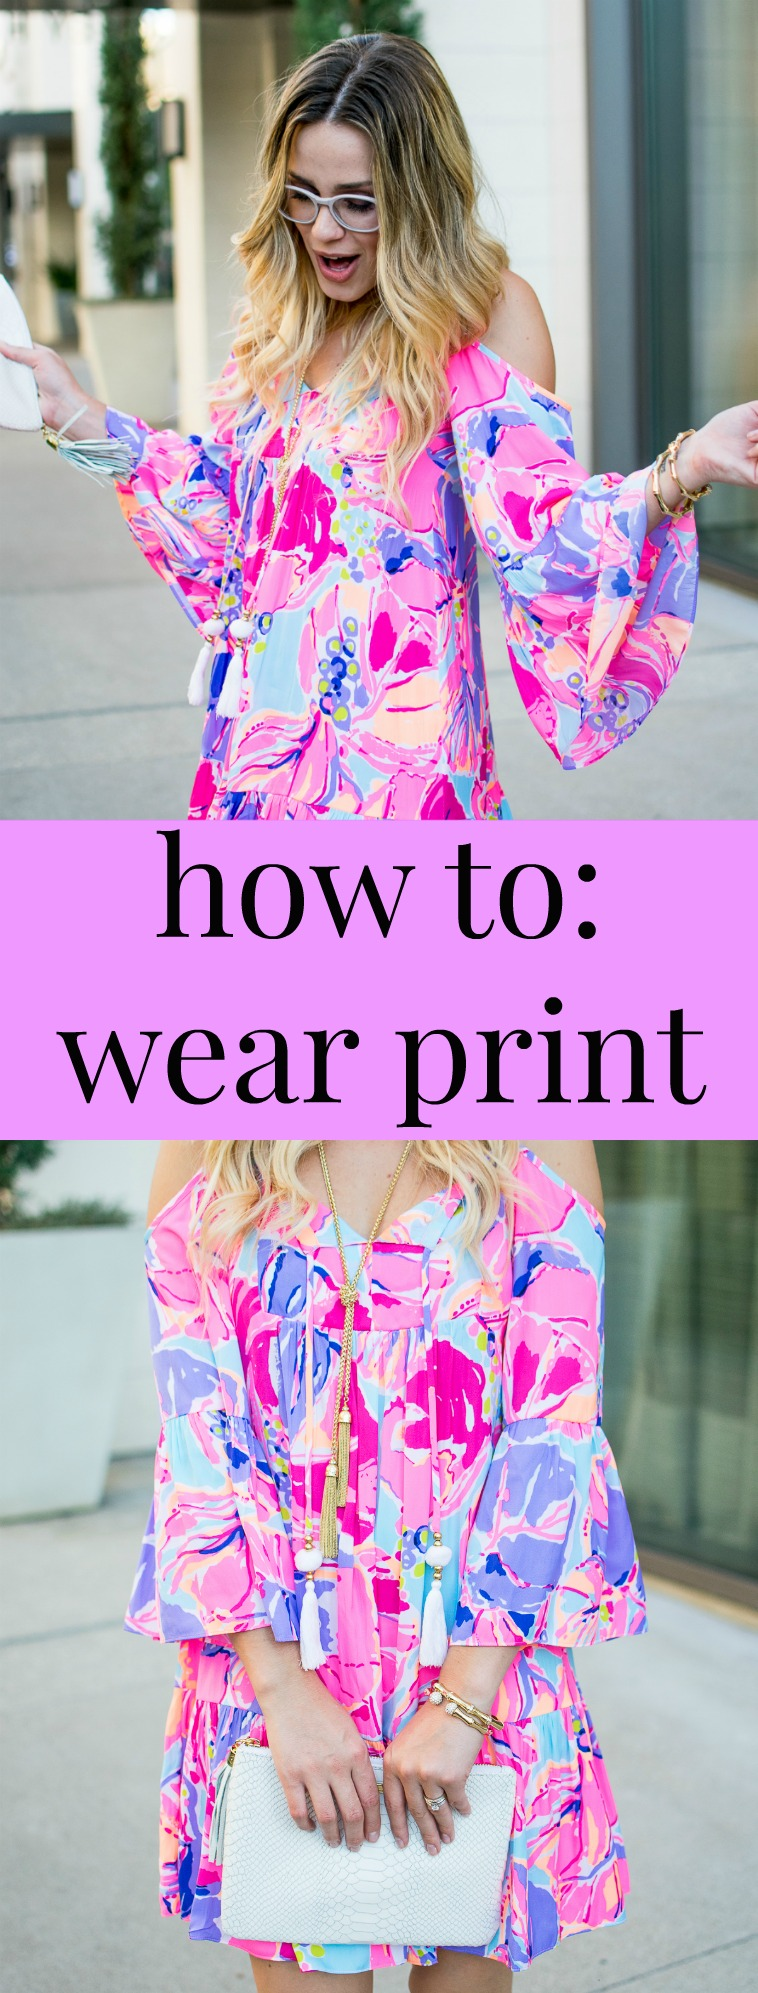 Lilly Pulitzer Dress   How to wear Print   Uptown with Elly Brown